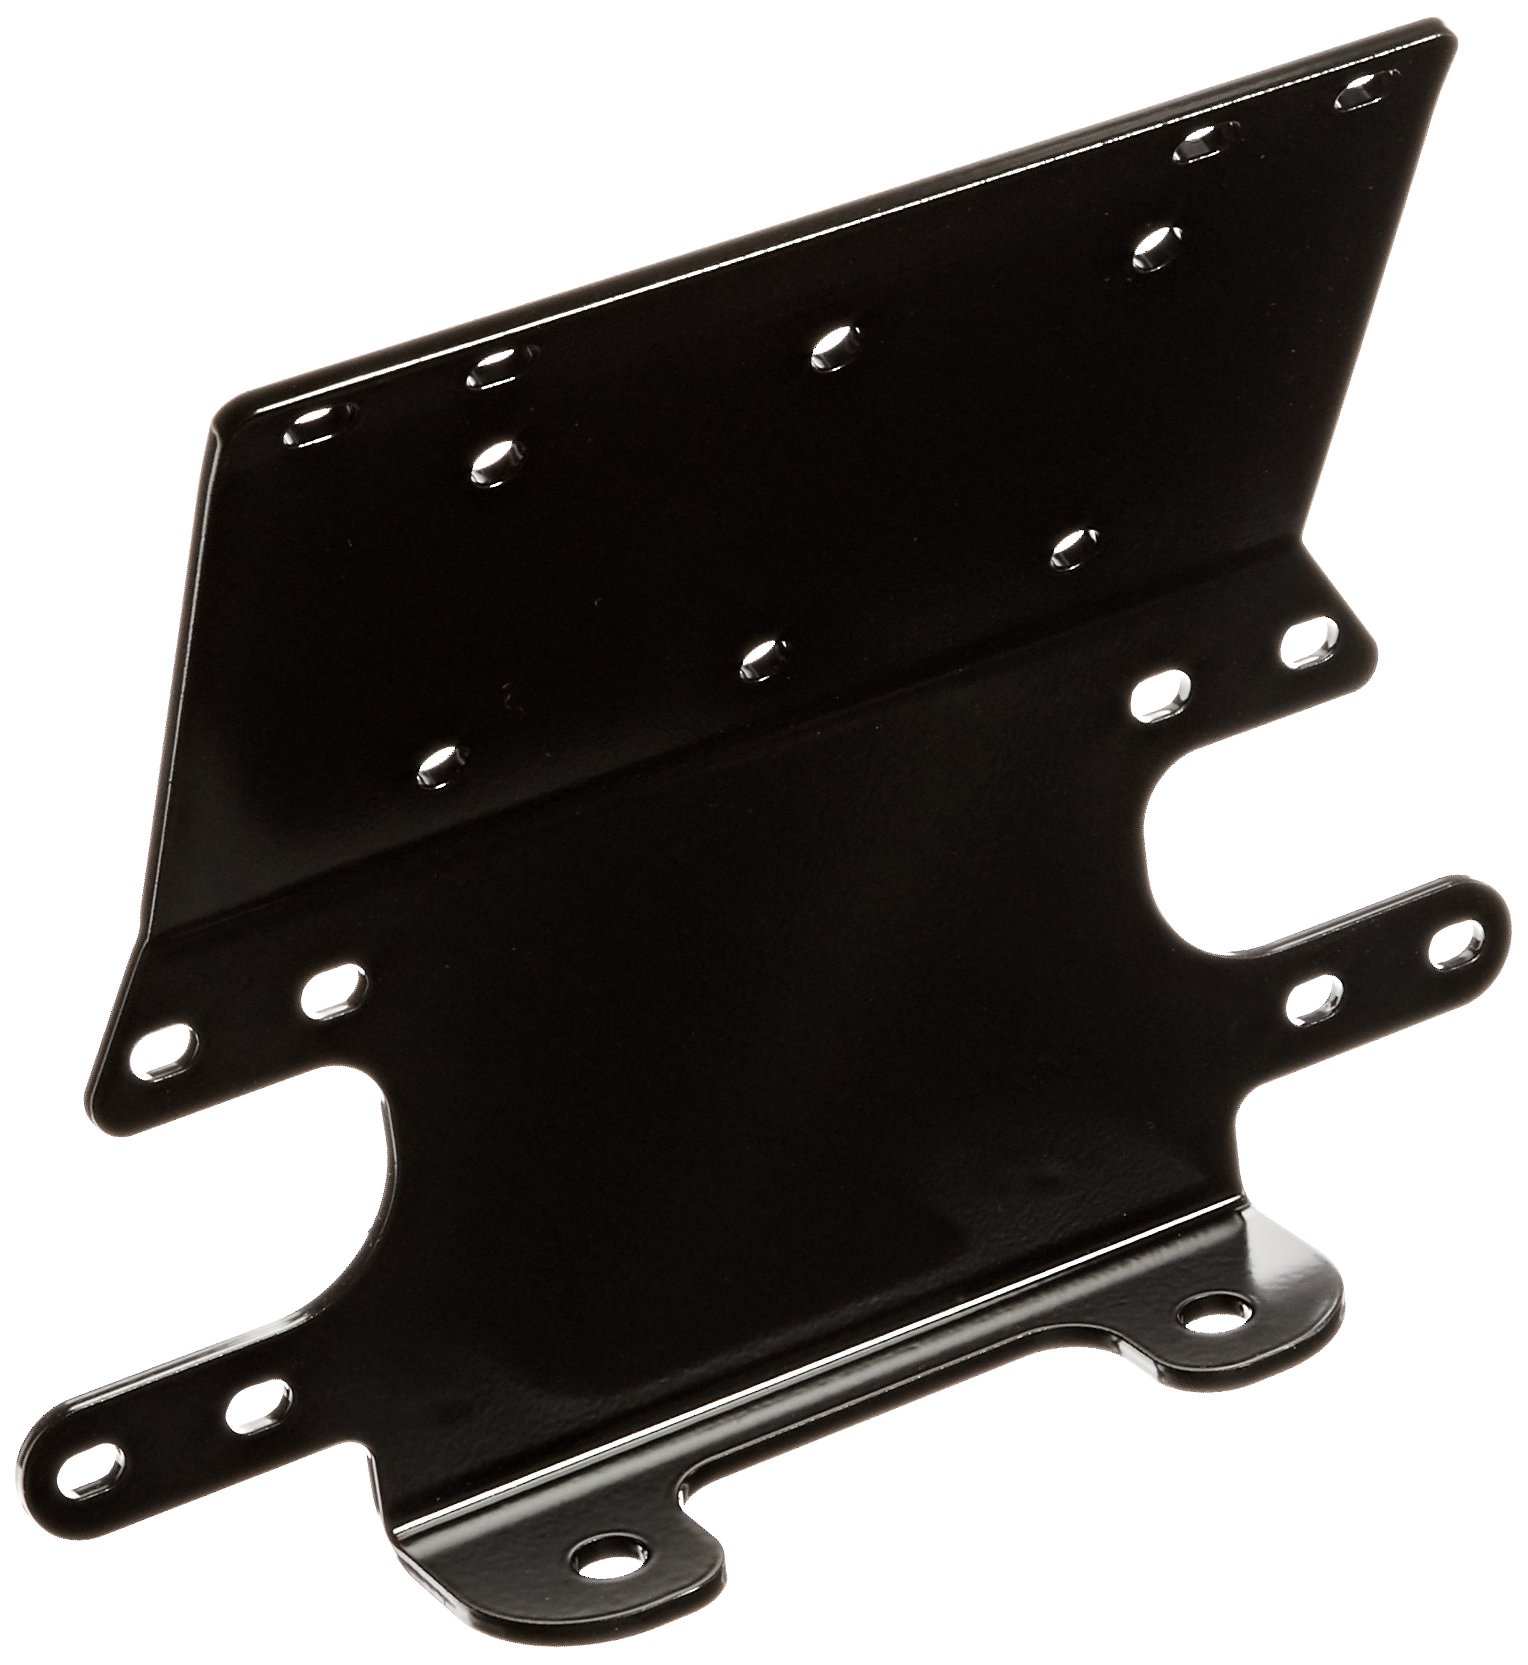 KFI Products 100545 Winch Mount for Honda Foreman 400/450 4x4 by KFI Products